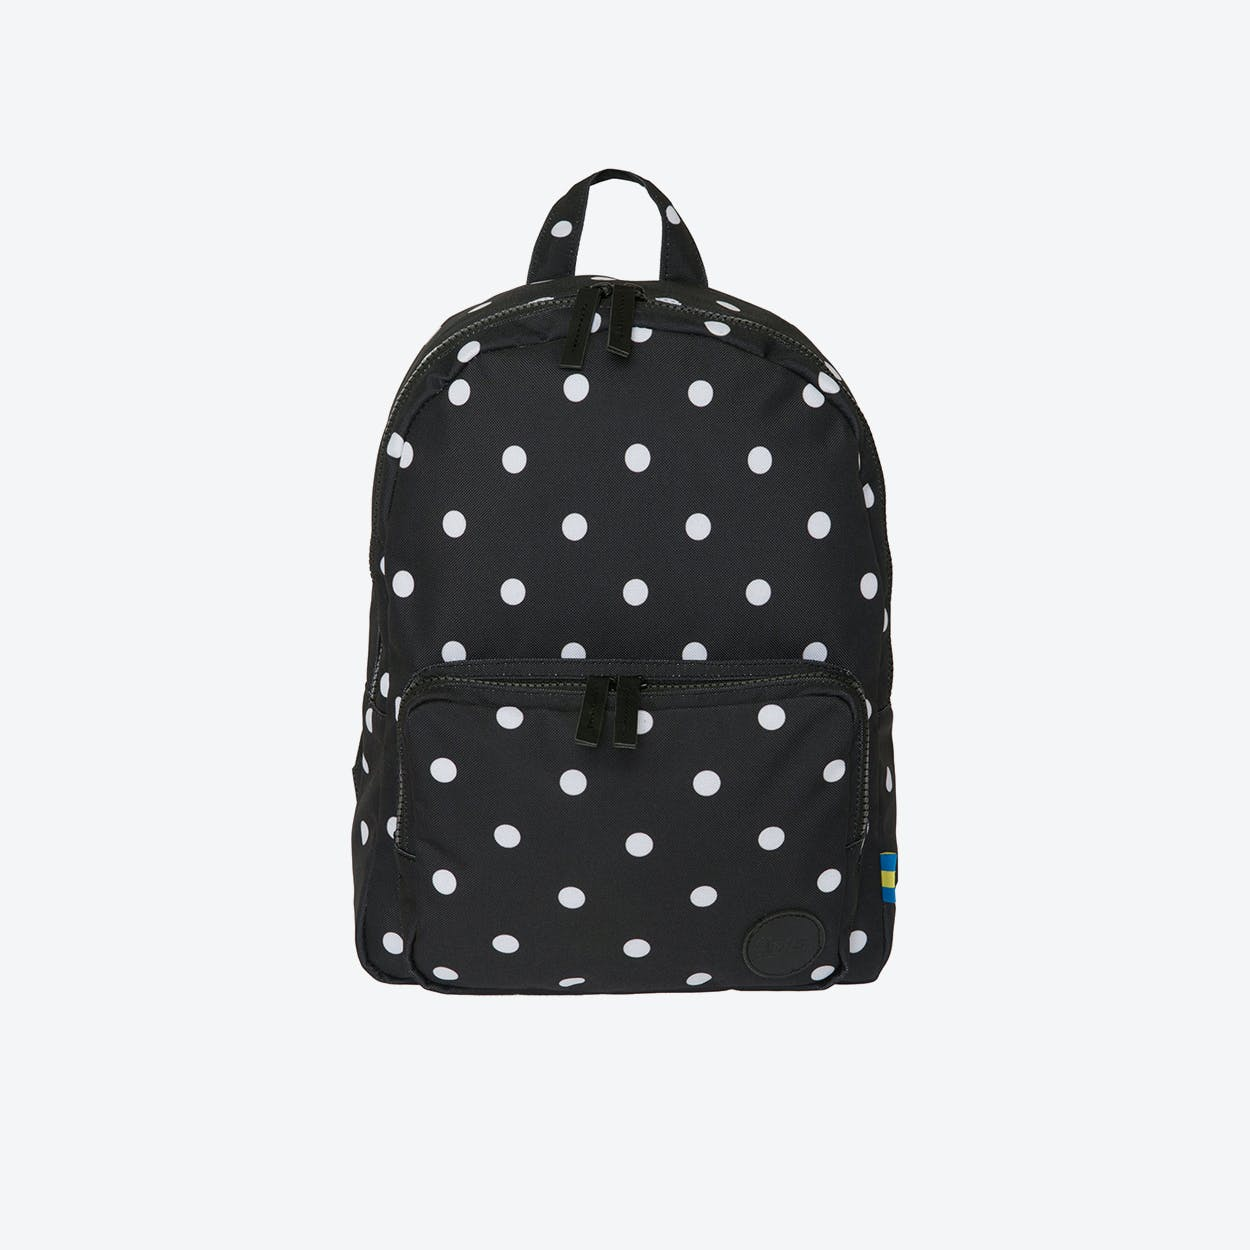 LS Gym Backpack Mini in Black & White Dot